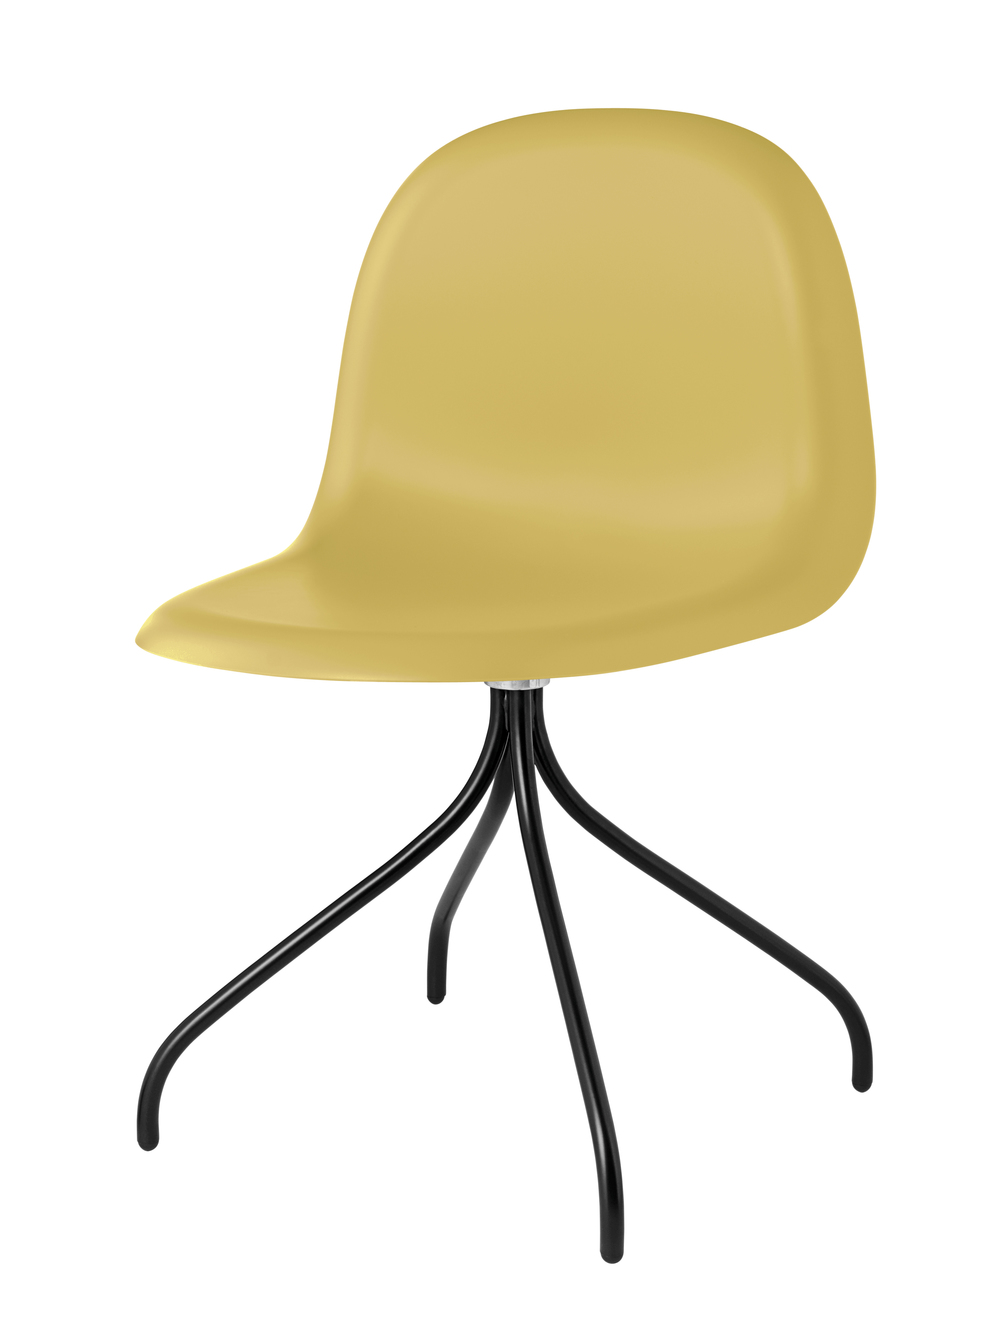 Gubi 9 Chair_Venetian Gold_Black Swivel.jpg